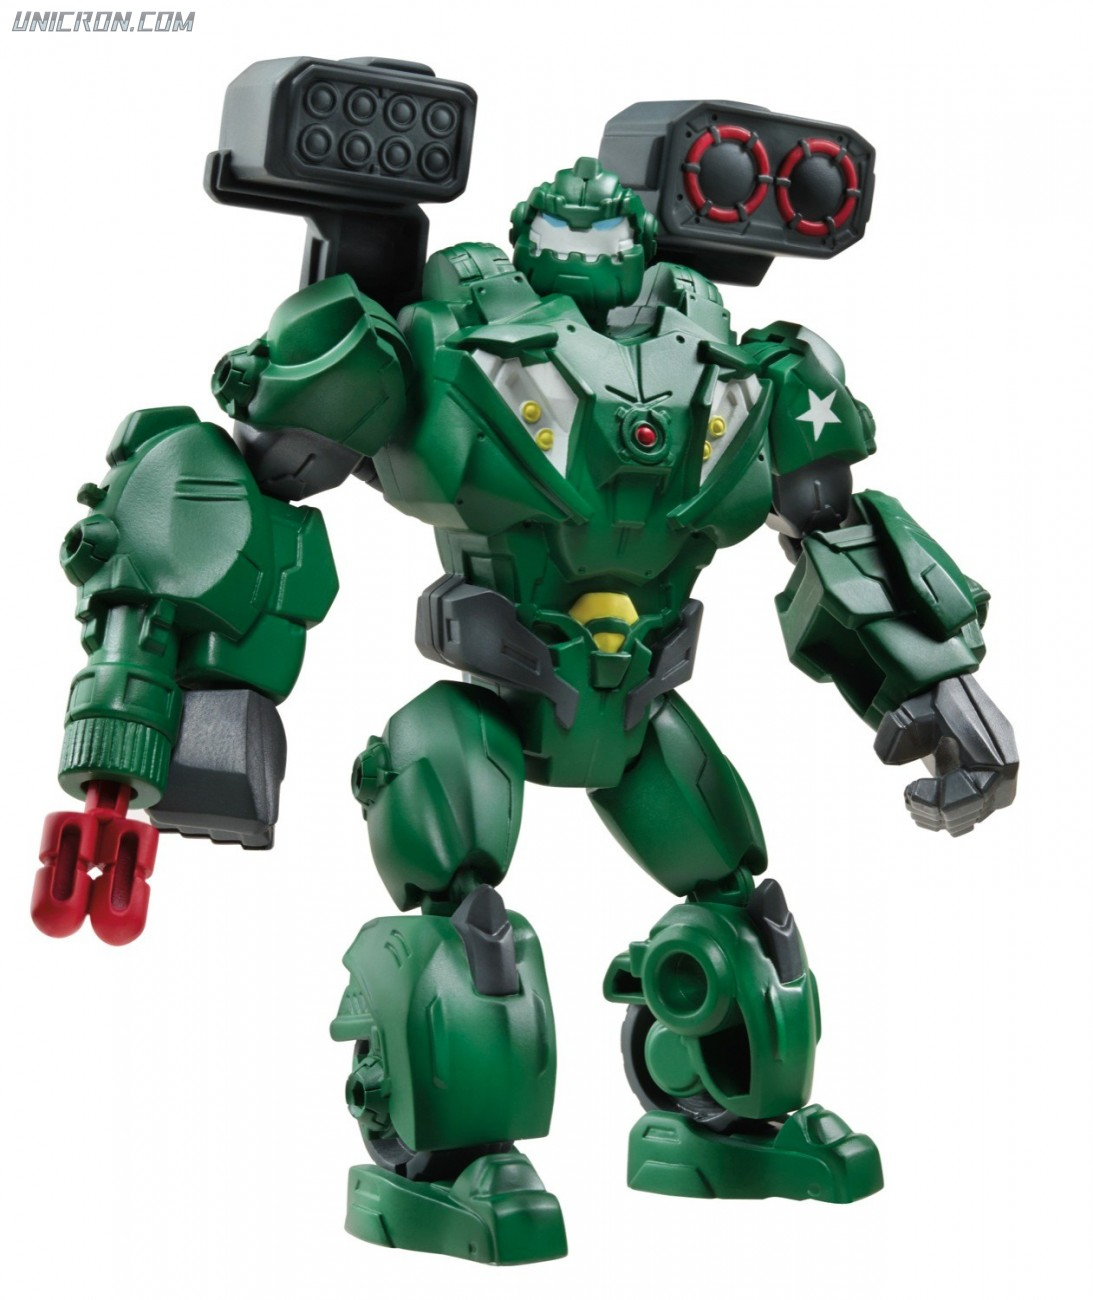 Transformers Hero Mashers Bulkhead (Hero Mashers) toy